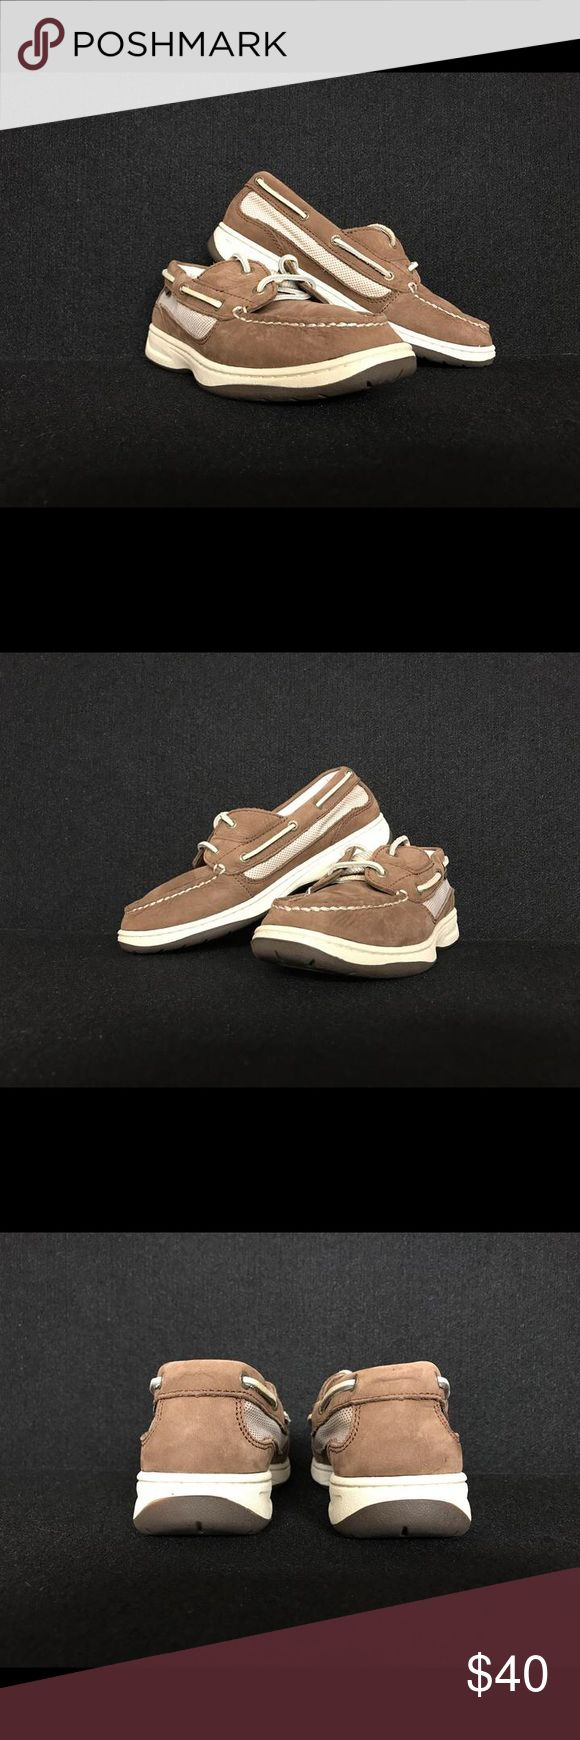 LL Bean Leather Boat Shoes Women's 8 Get your feet ready for Spring with these L.L. Bean leather boat shoes in Women's size 8!!! There's even a picture of an anchor in the insole! Excellent, gently used condition, smoke free & tear free! L.L. Bean Shoes Flats & Loafers